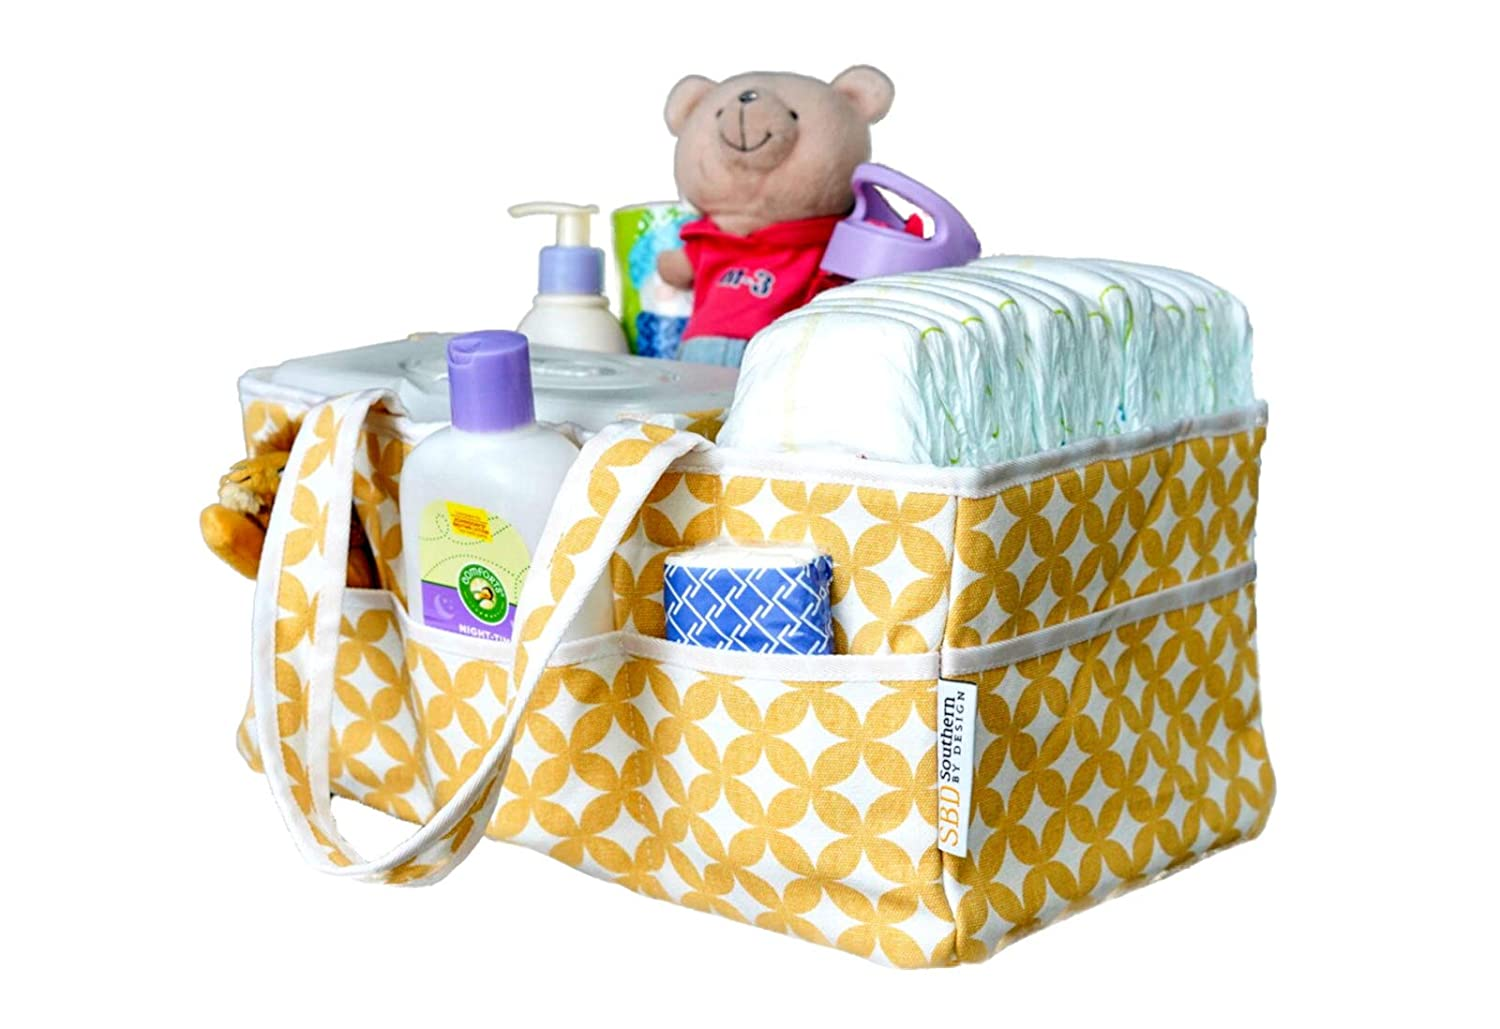 Baby Diaper Caddy Organizer Washable | Nursery Storage Diaper Tote and Basket |15 x 9 x 7 Inches Southern By Design